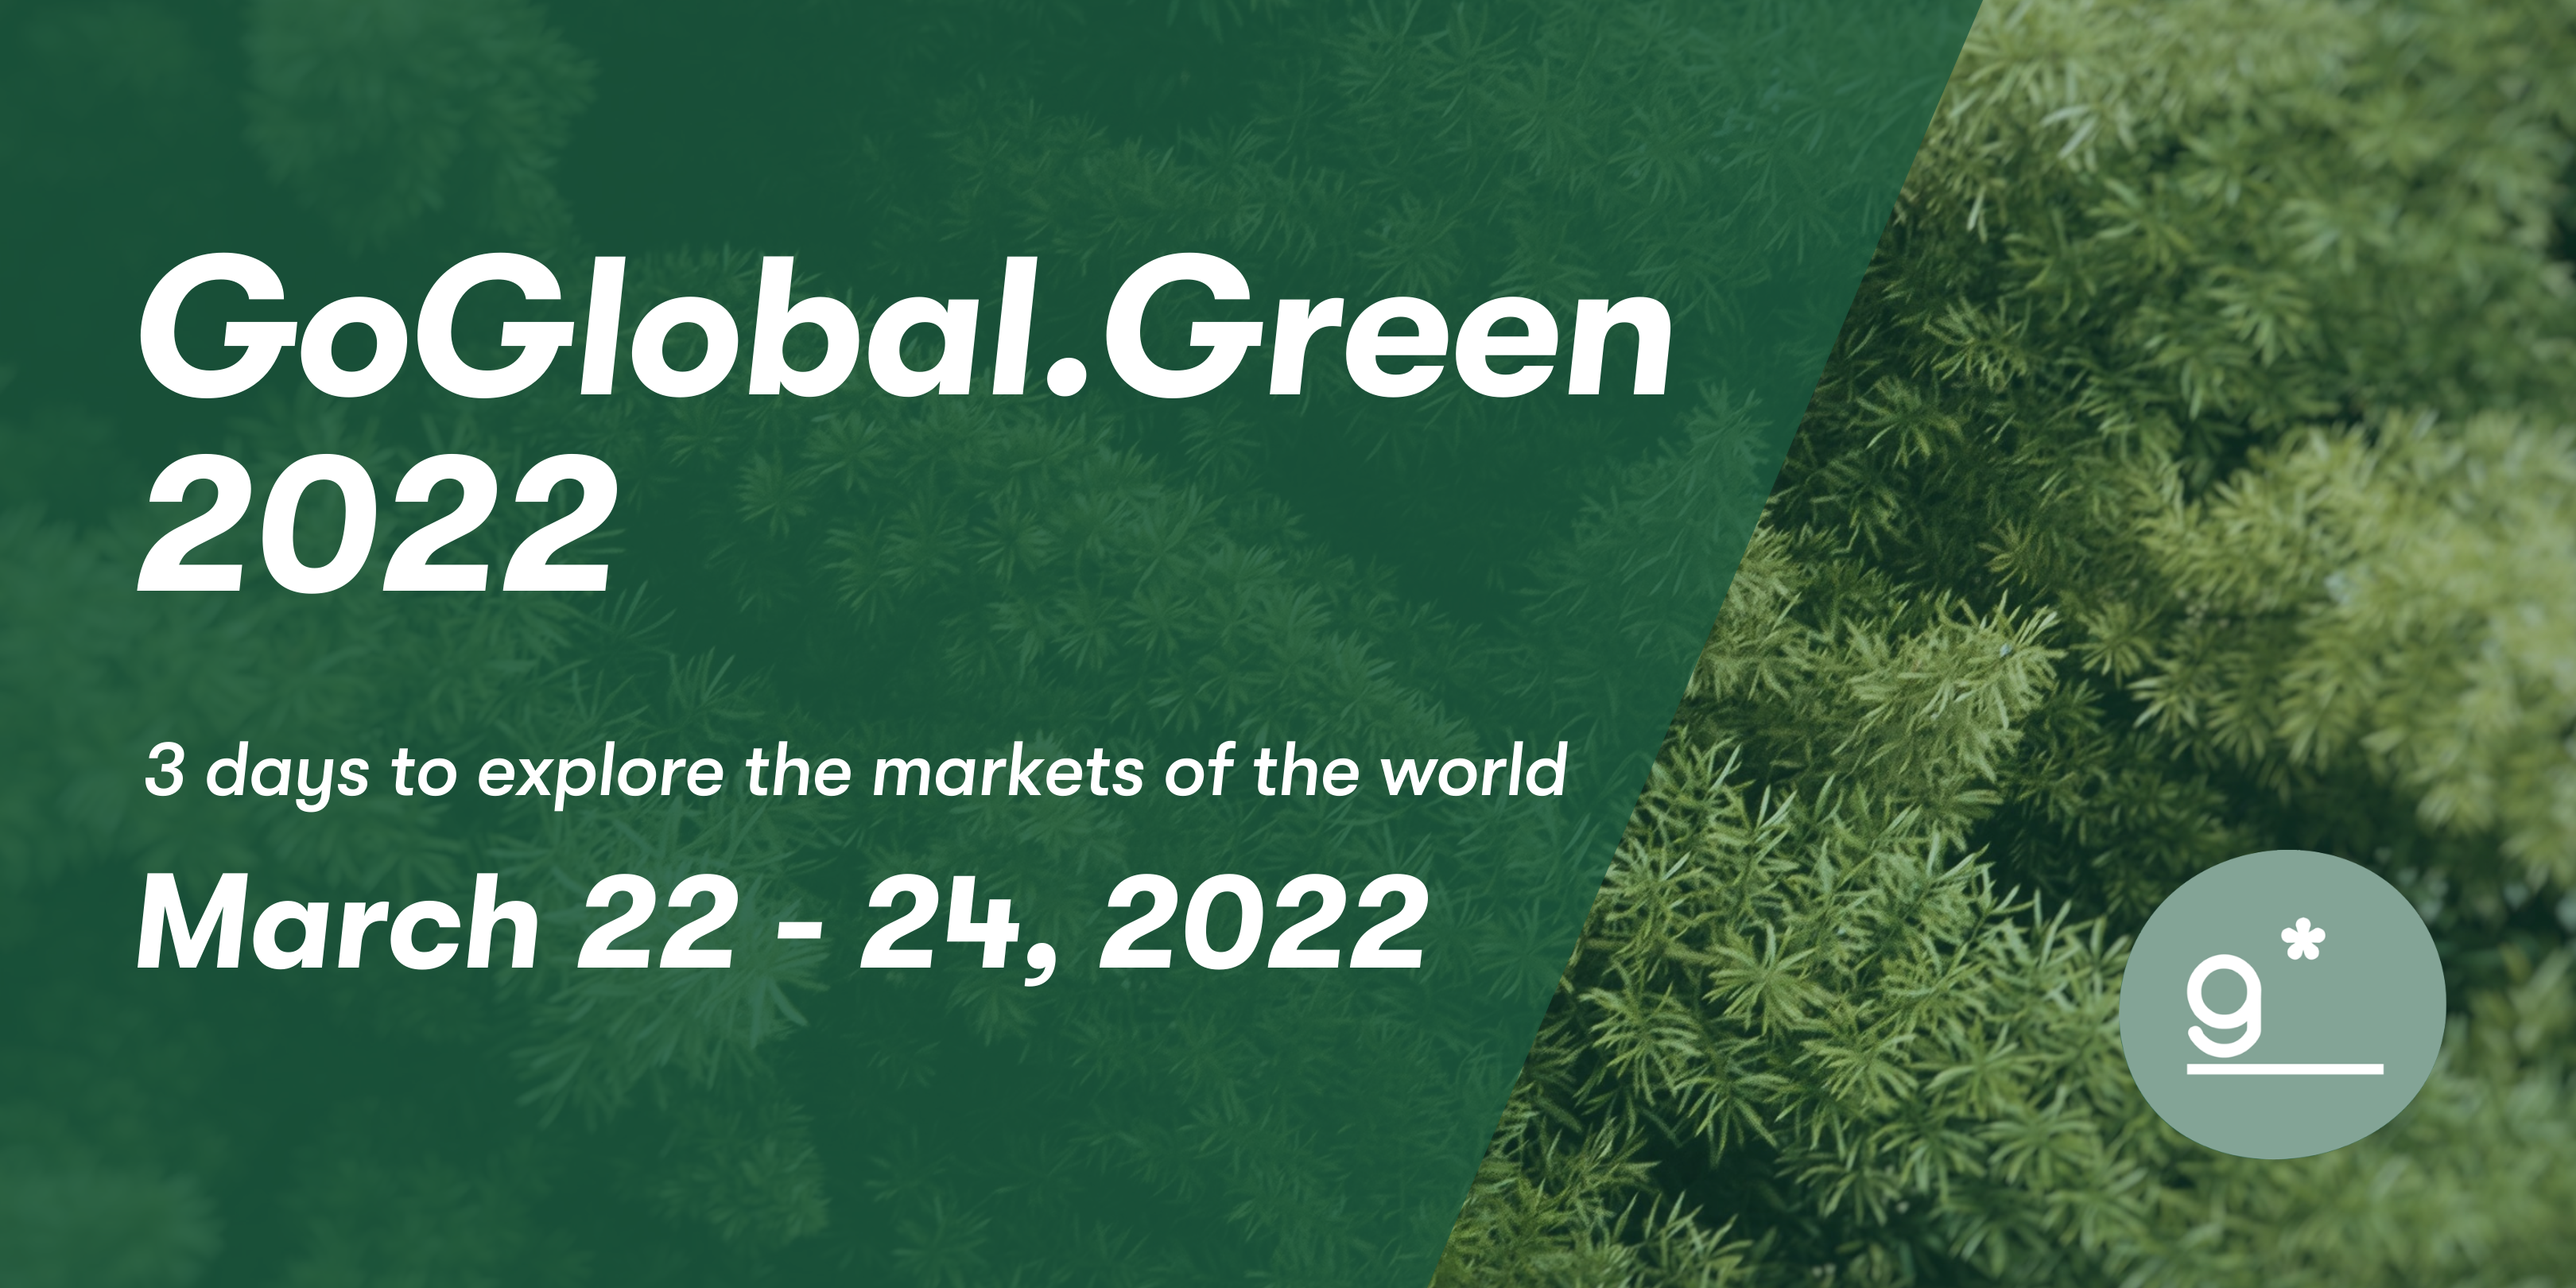 Banner to promote the GoGlobal.Green Conference in 2022.